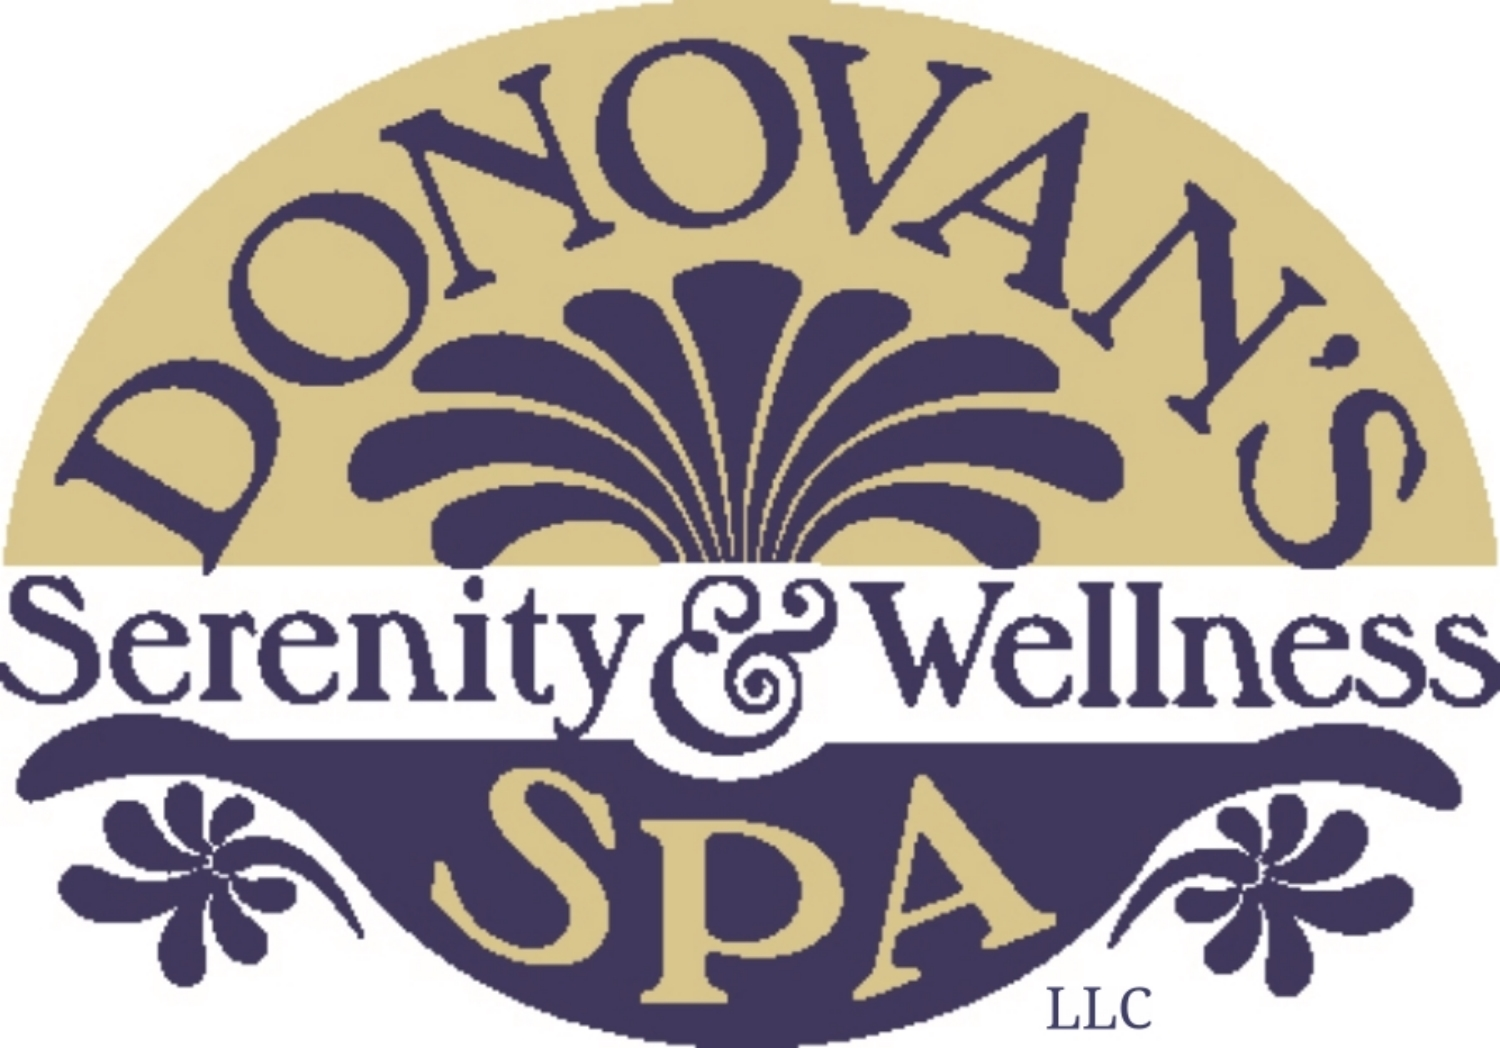 Donovan's Serenity & Wellness Spa, LLC